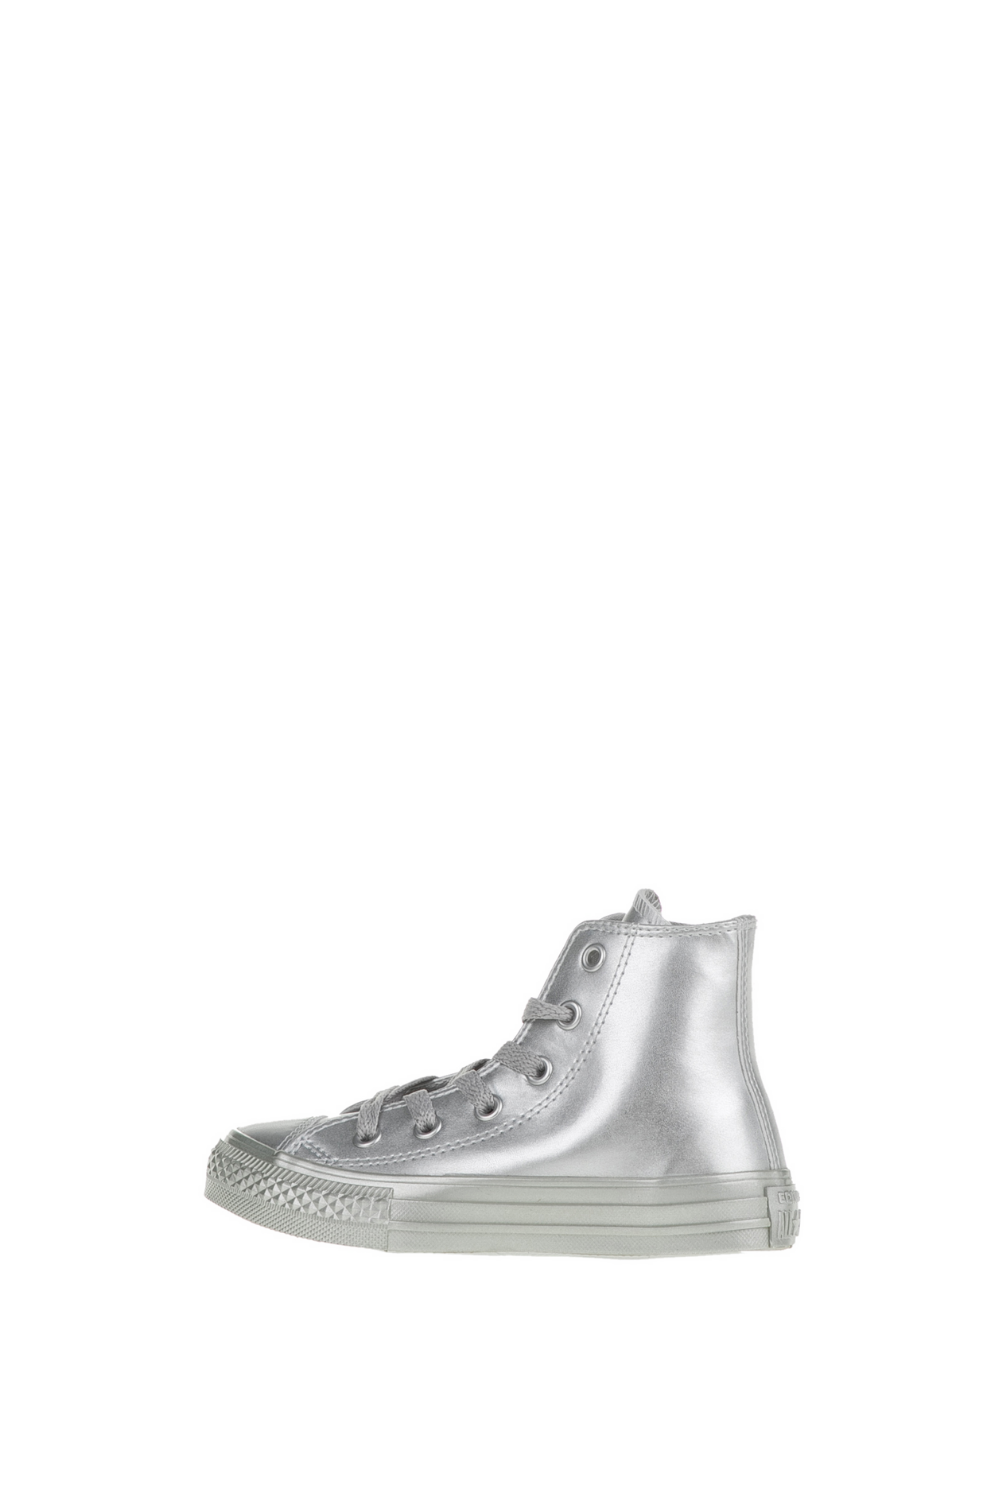 CONVERSE – Παιδικά ψηλά sneakers CONVERSE Chuck Taylor All Star Hi ασημί